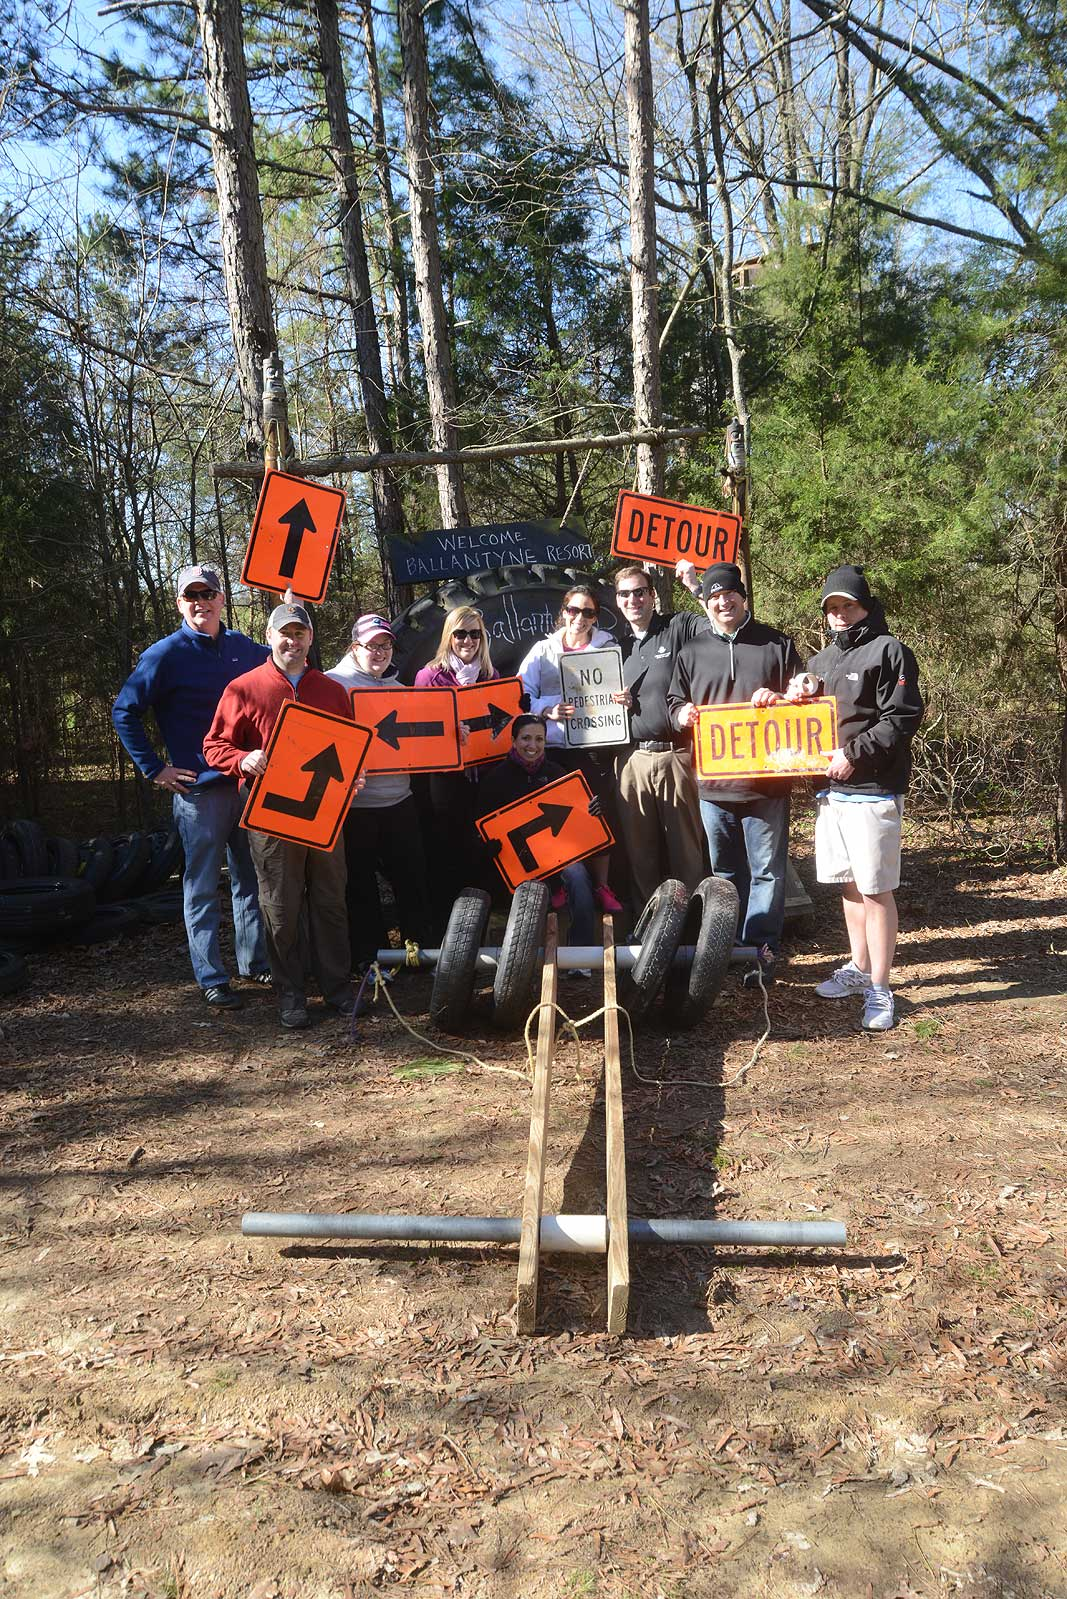 Ballantyne Resort team building at Xtreeme Challenge 17 acre outdoor adventure center